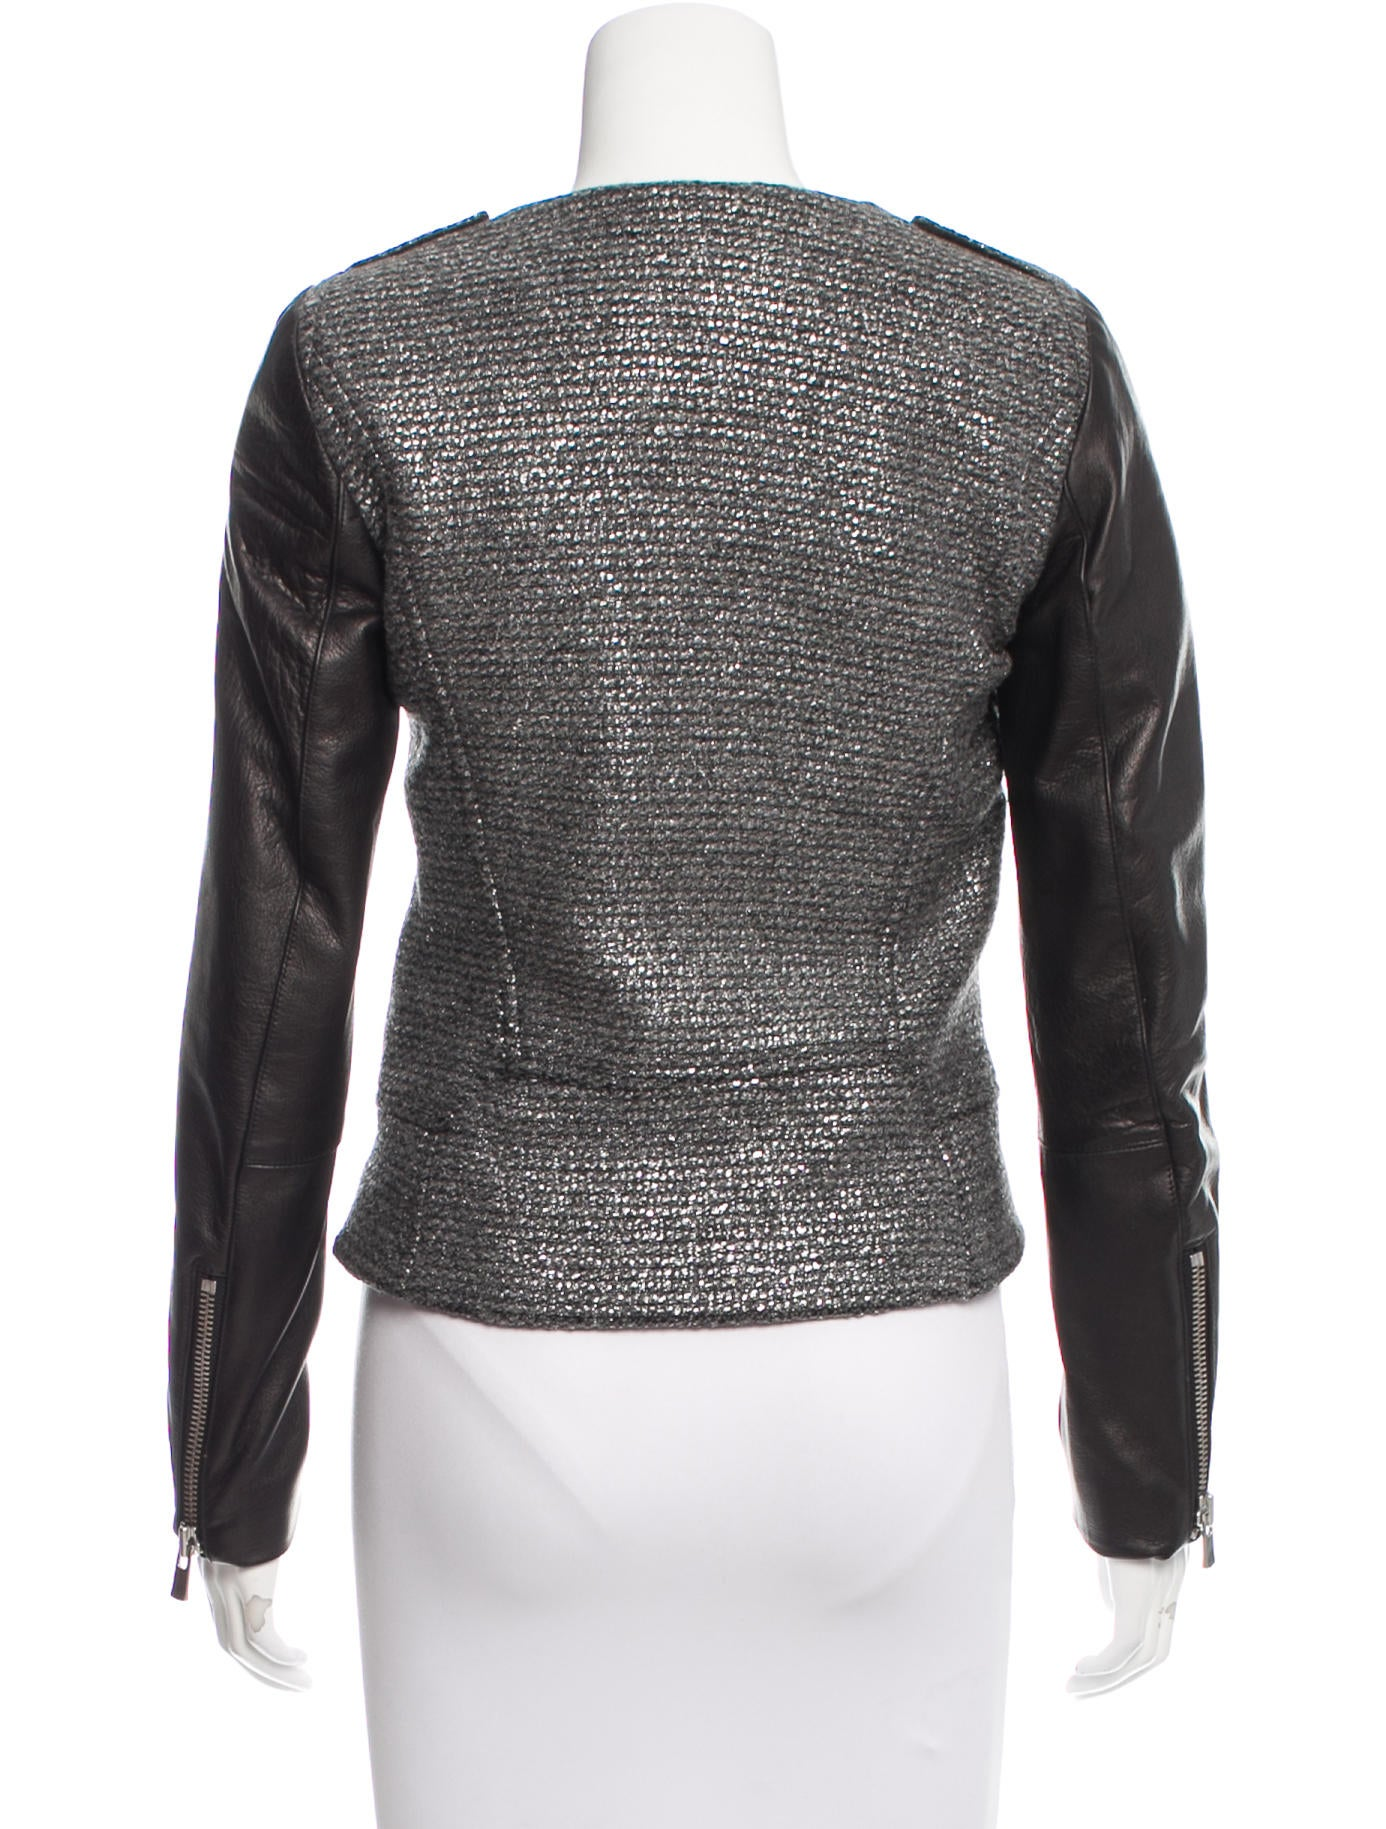 Shop for and buy mens tweed leather jacket online at Macy's. Find mens tweed leather jacket at Macy's.